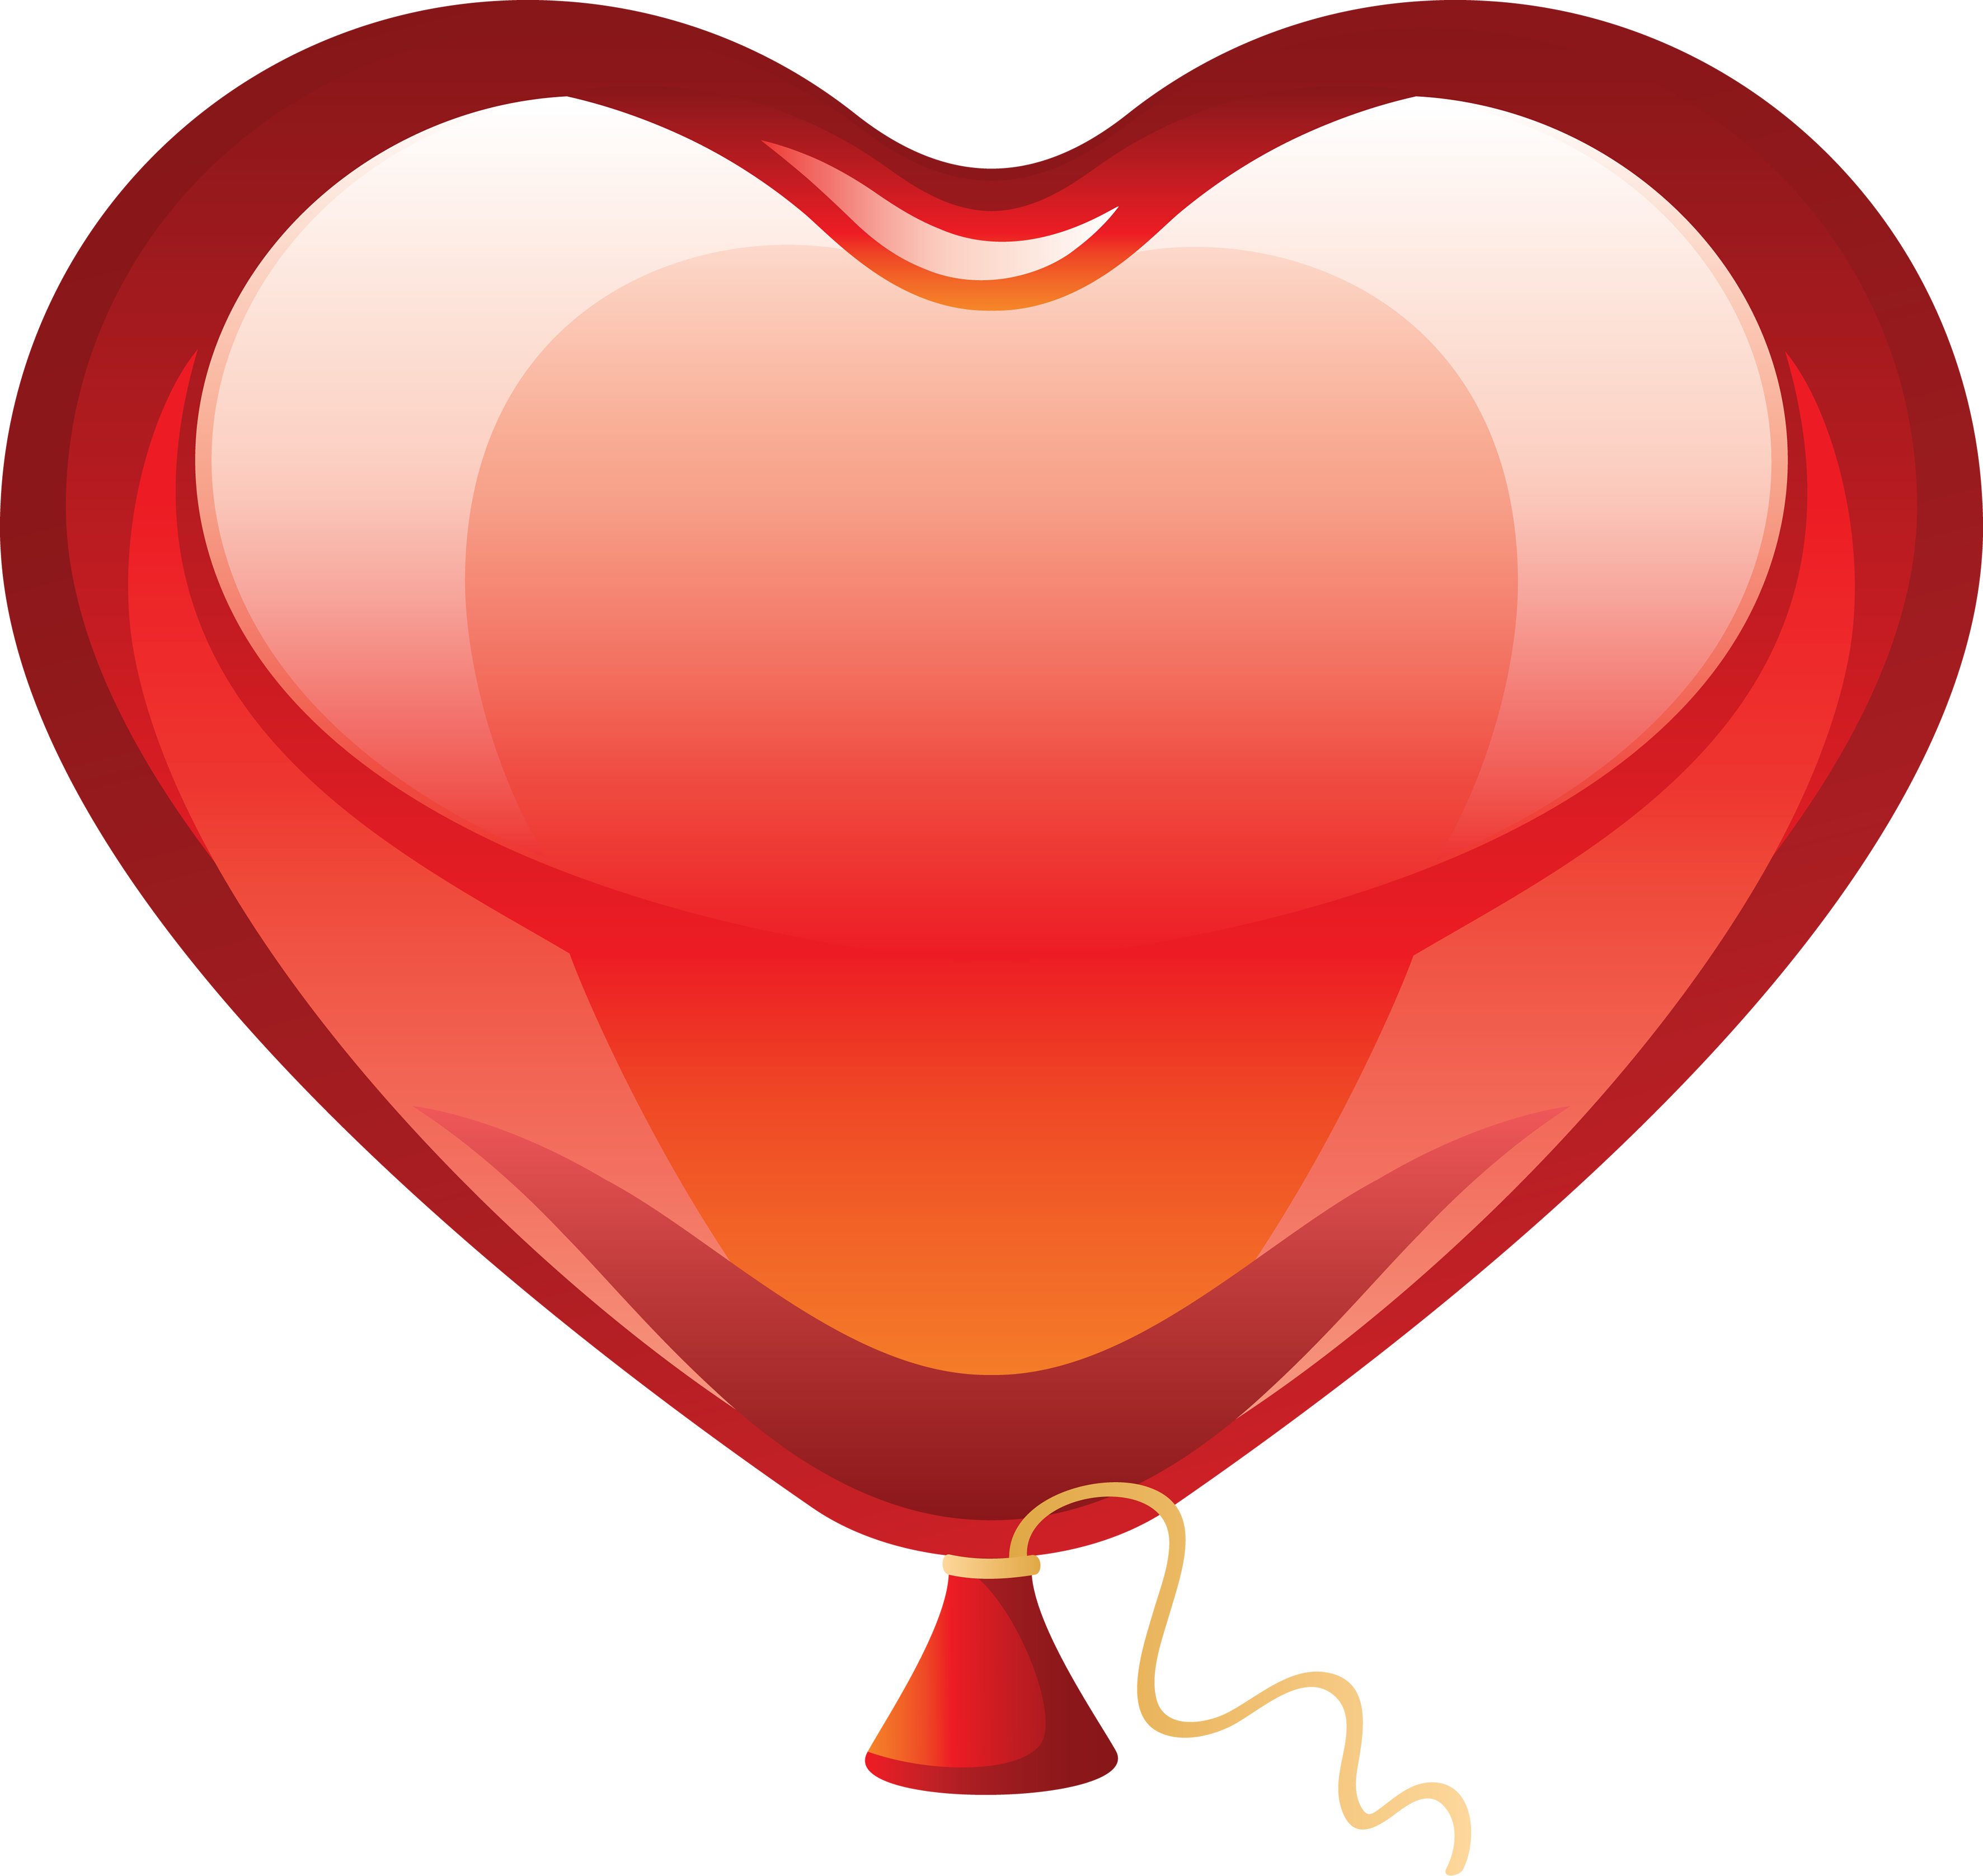 3544x3352 Balloon Png Image, Free Download, Heart Balloons